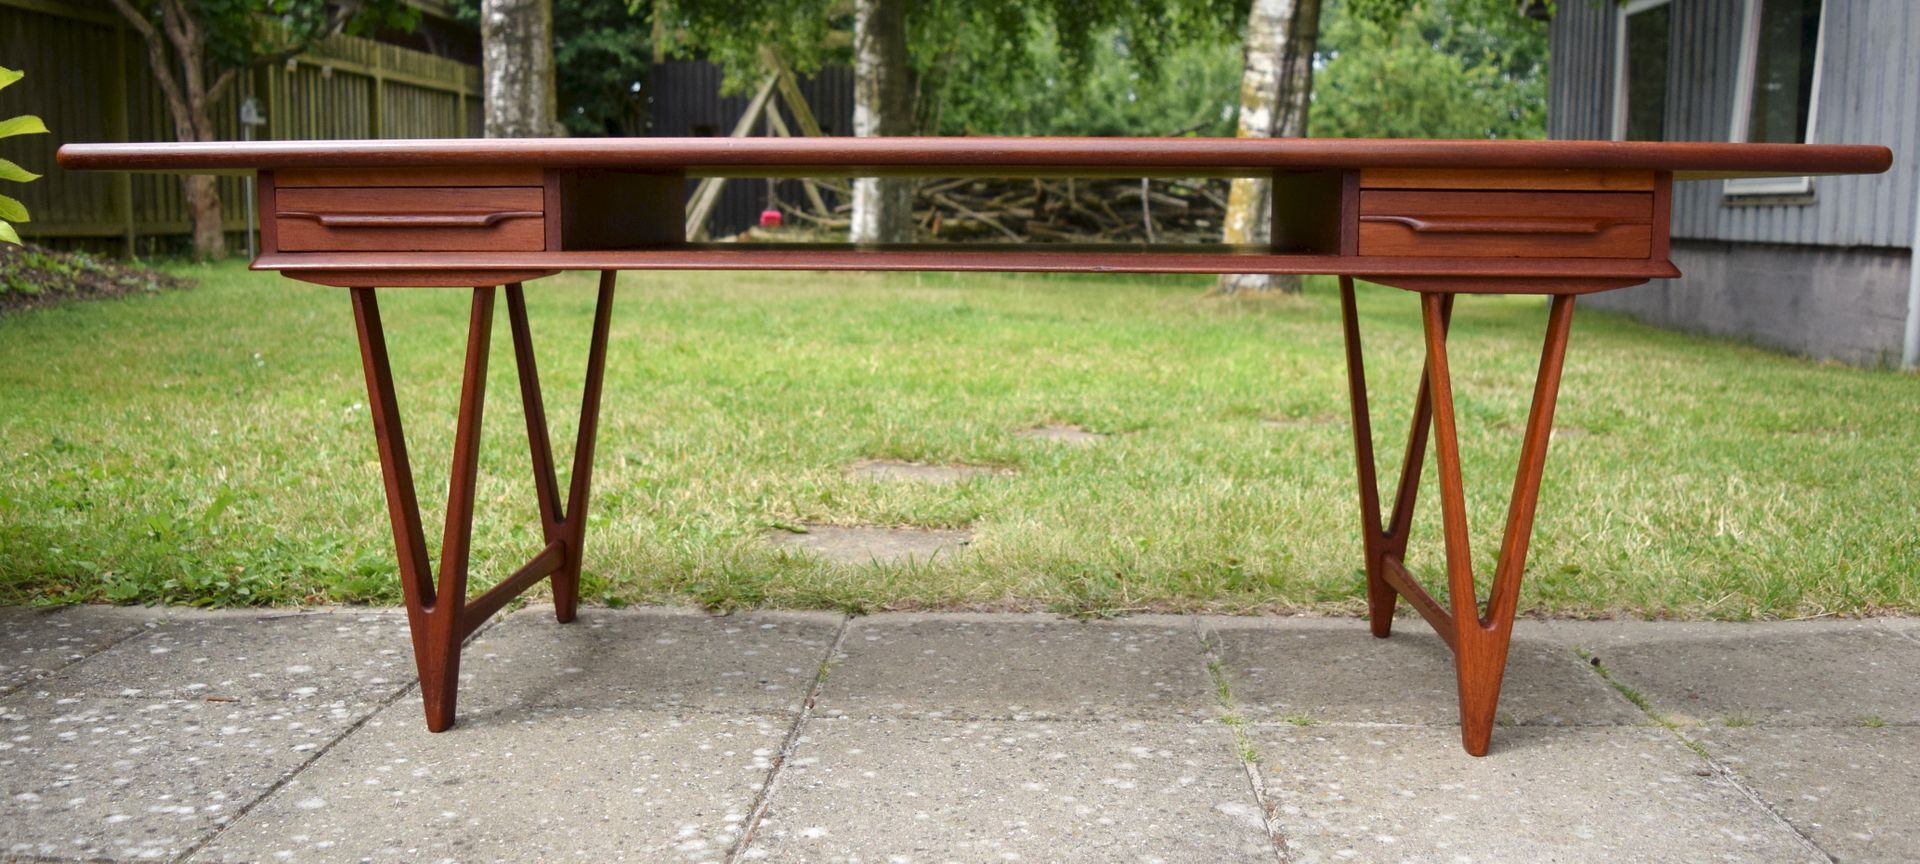 Danish Teak Coffee Table By E W Bach For Toften 1960s For Sale At Pamono